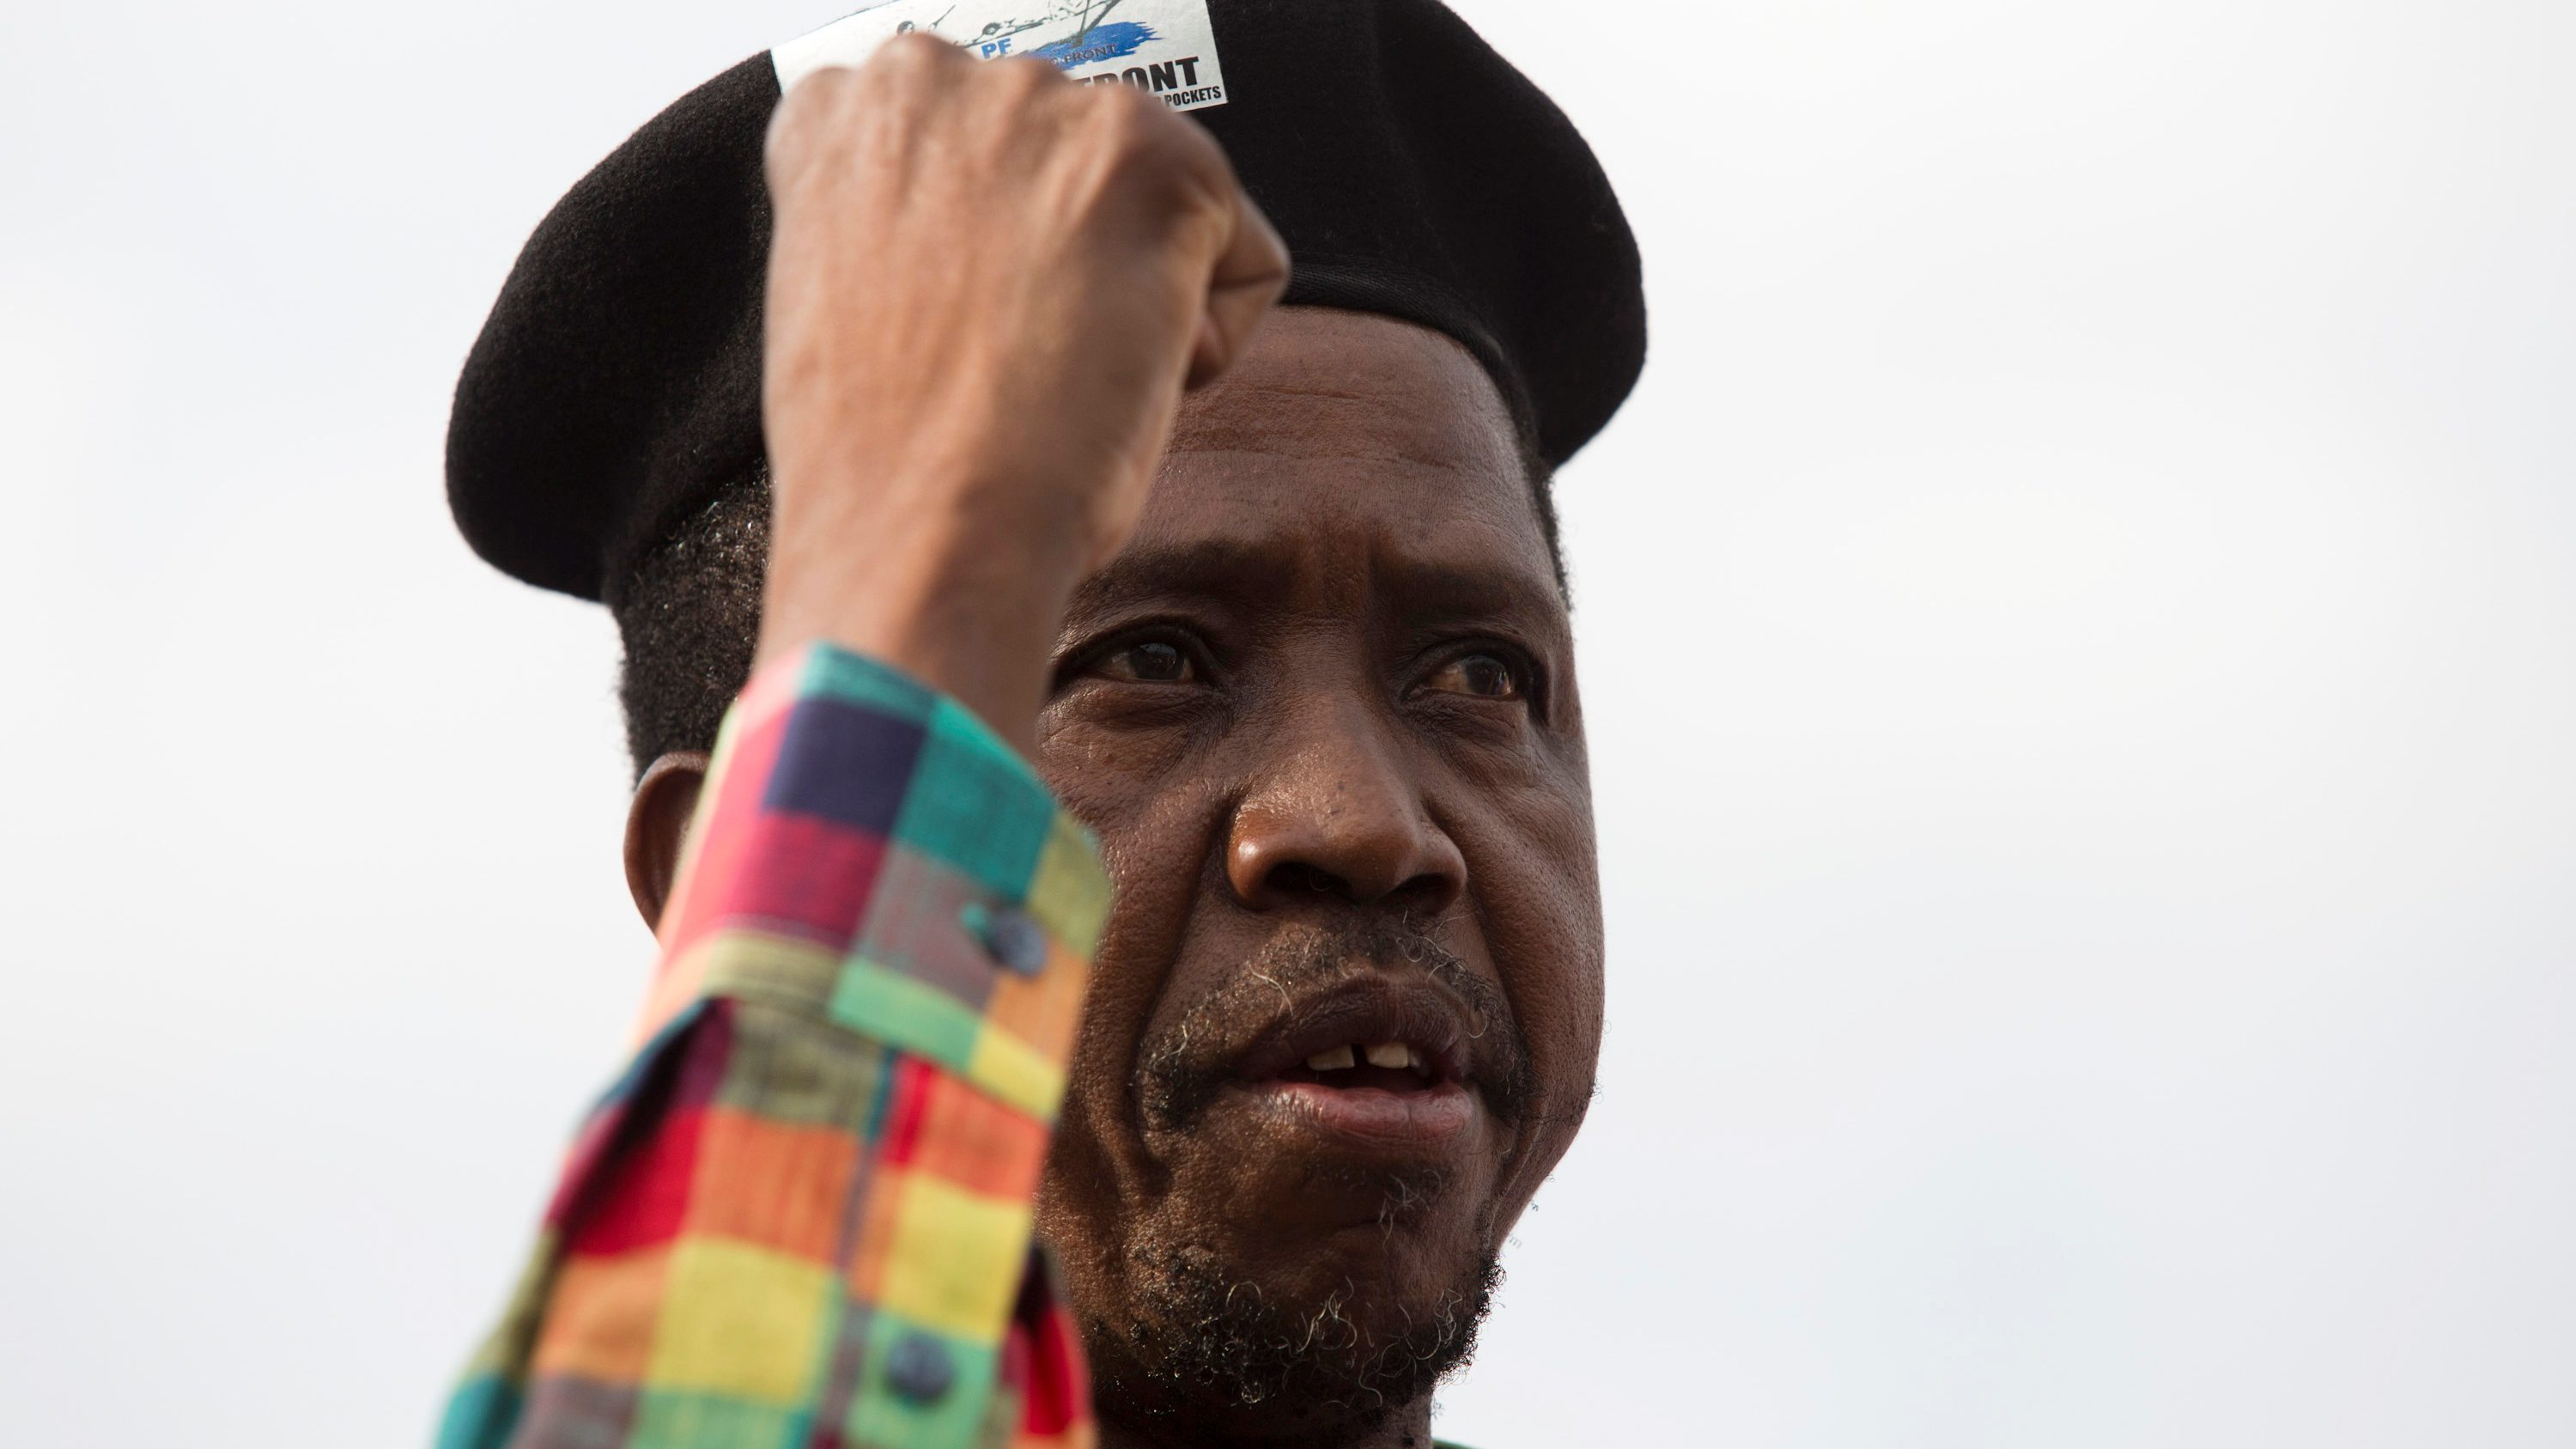 Zambia's President Edgar Lungu speaks at a rally in the capital Lusaka